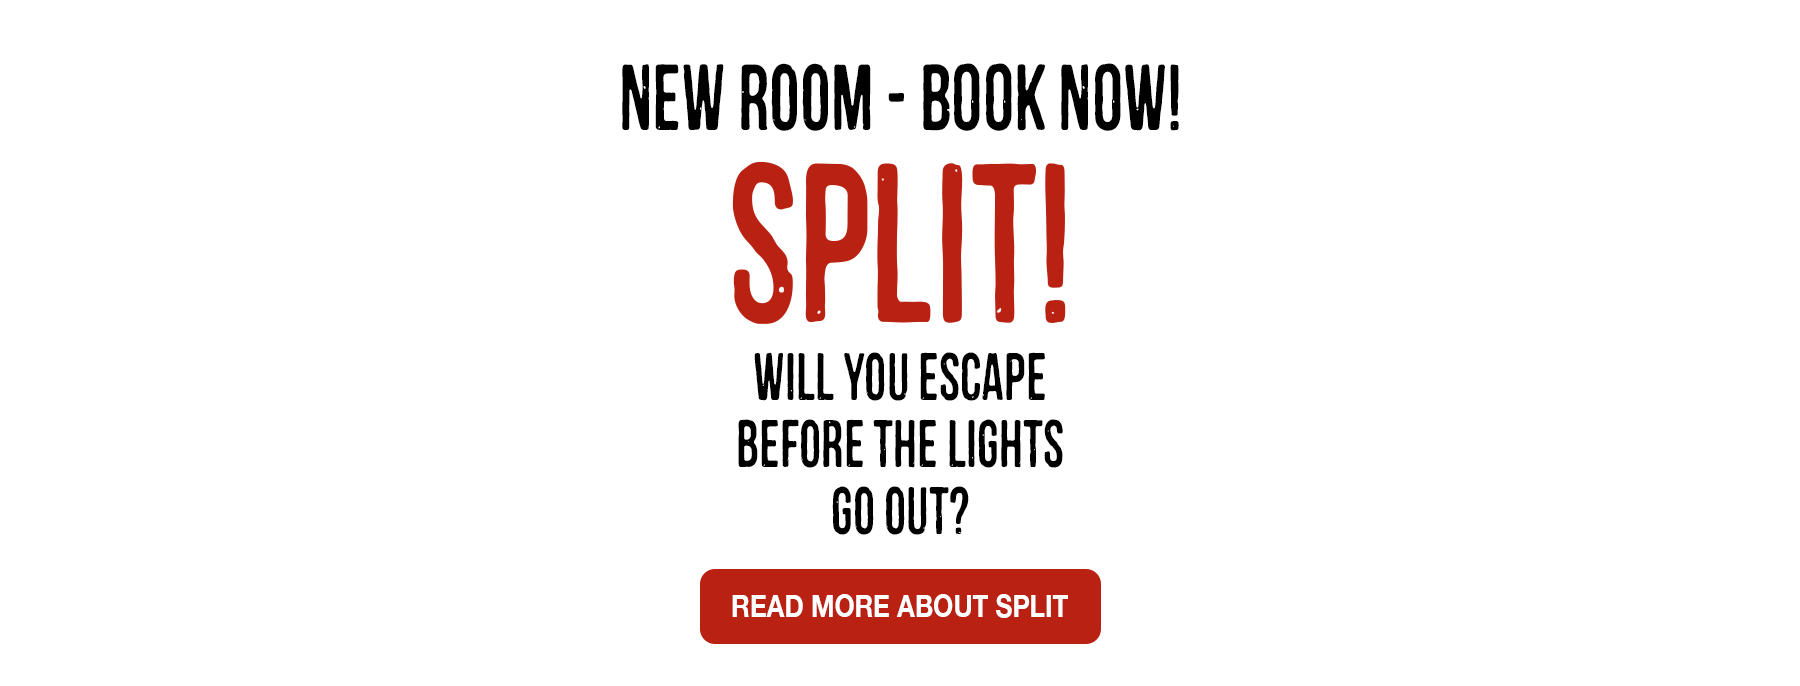 SPLIT Slider Text - Lakeland Escape Room